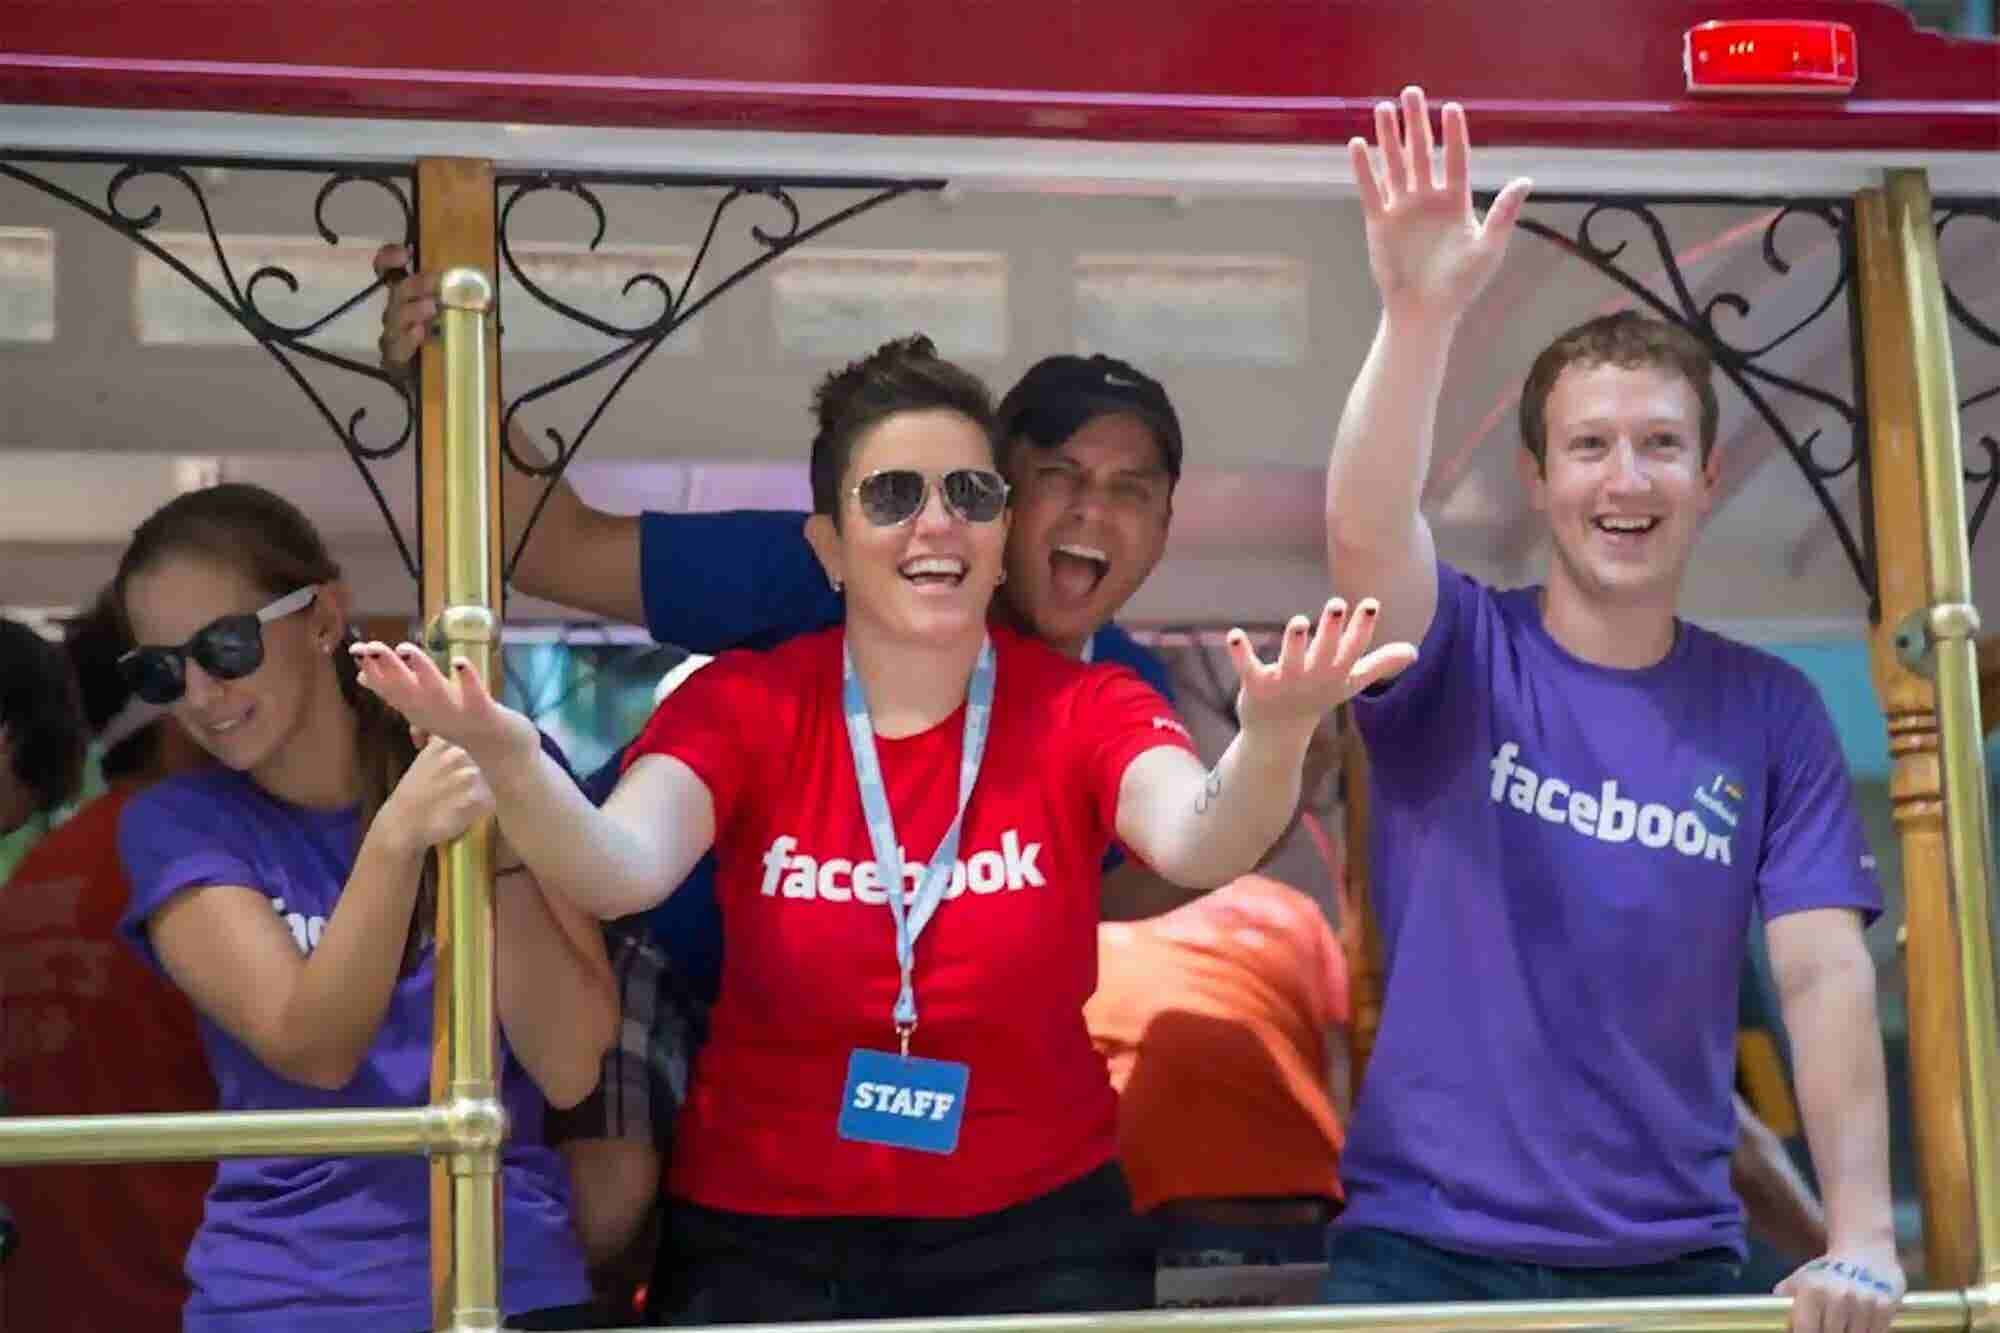 Facebook Is Going to Start Handing Out Employee Bonuses If They Help the Company Achieve 'Social Good'